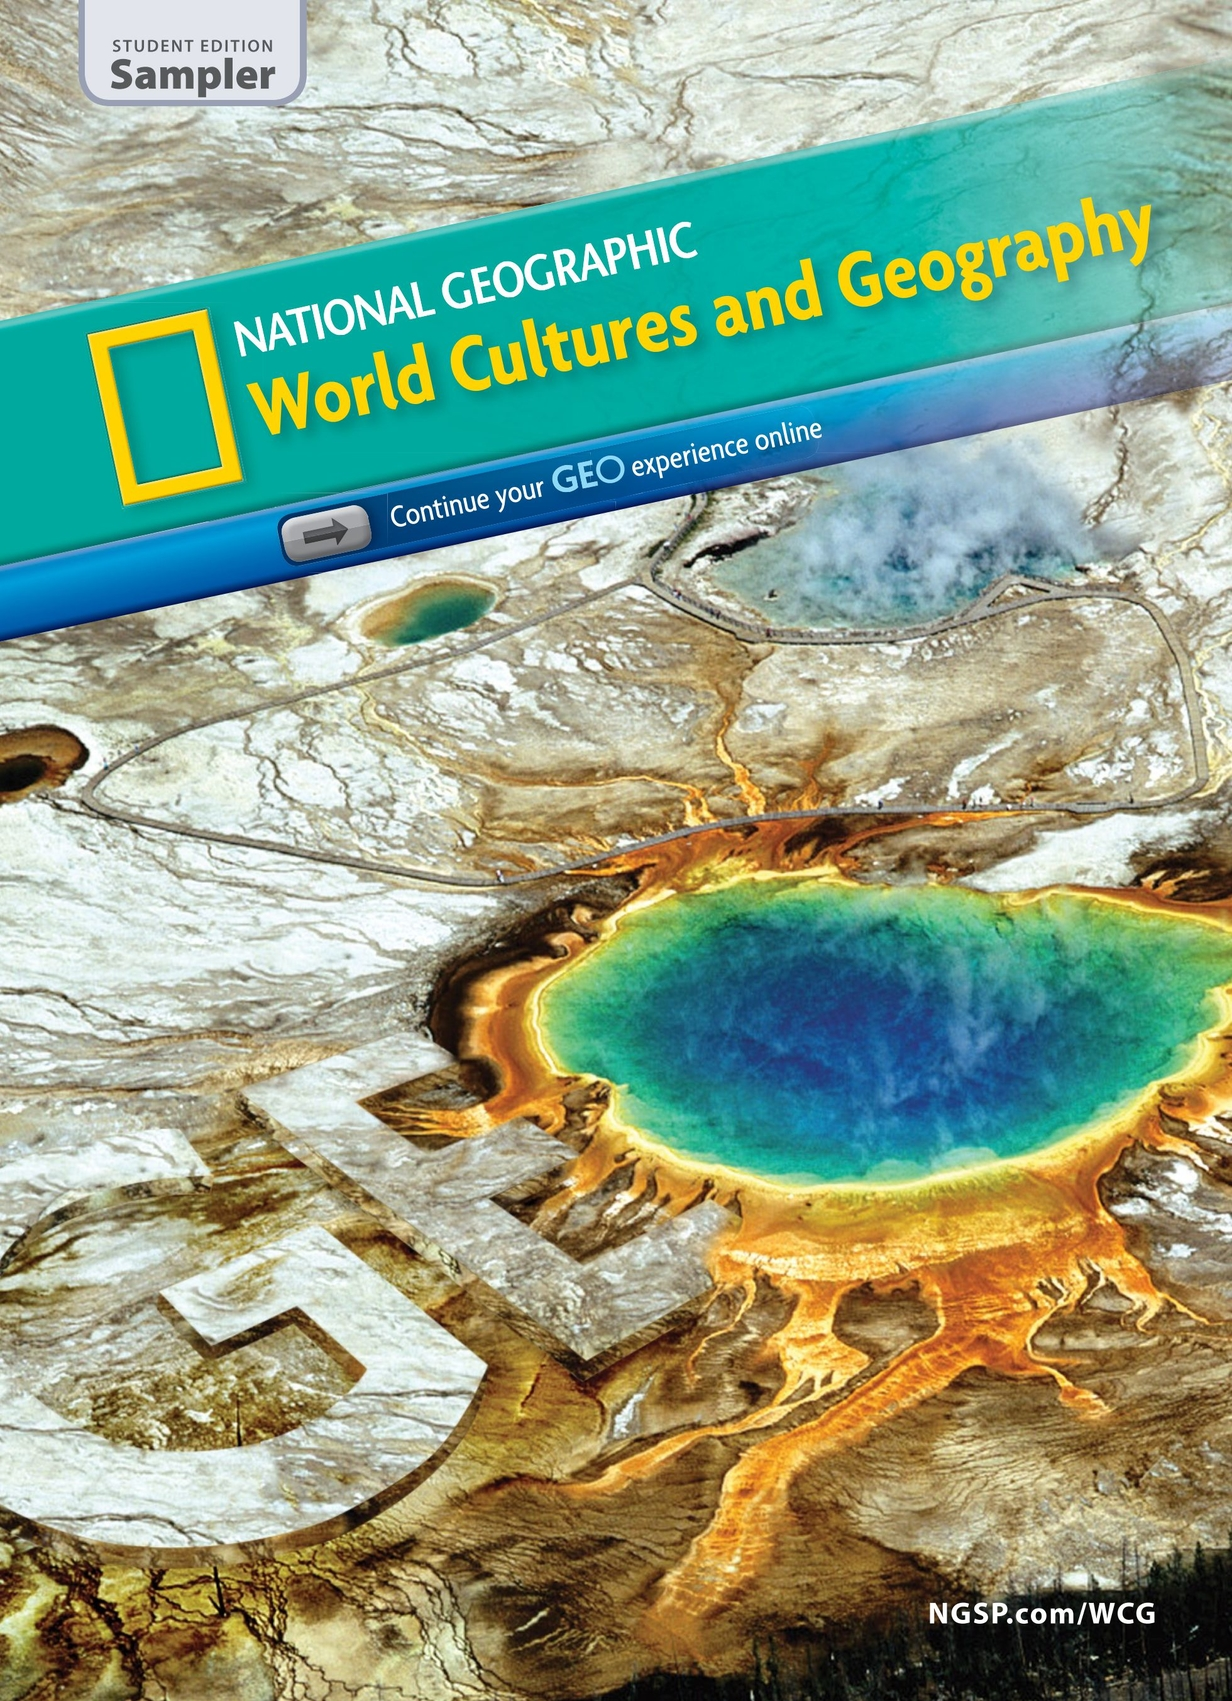 National Geographic World Cultures And Geography Student Version